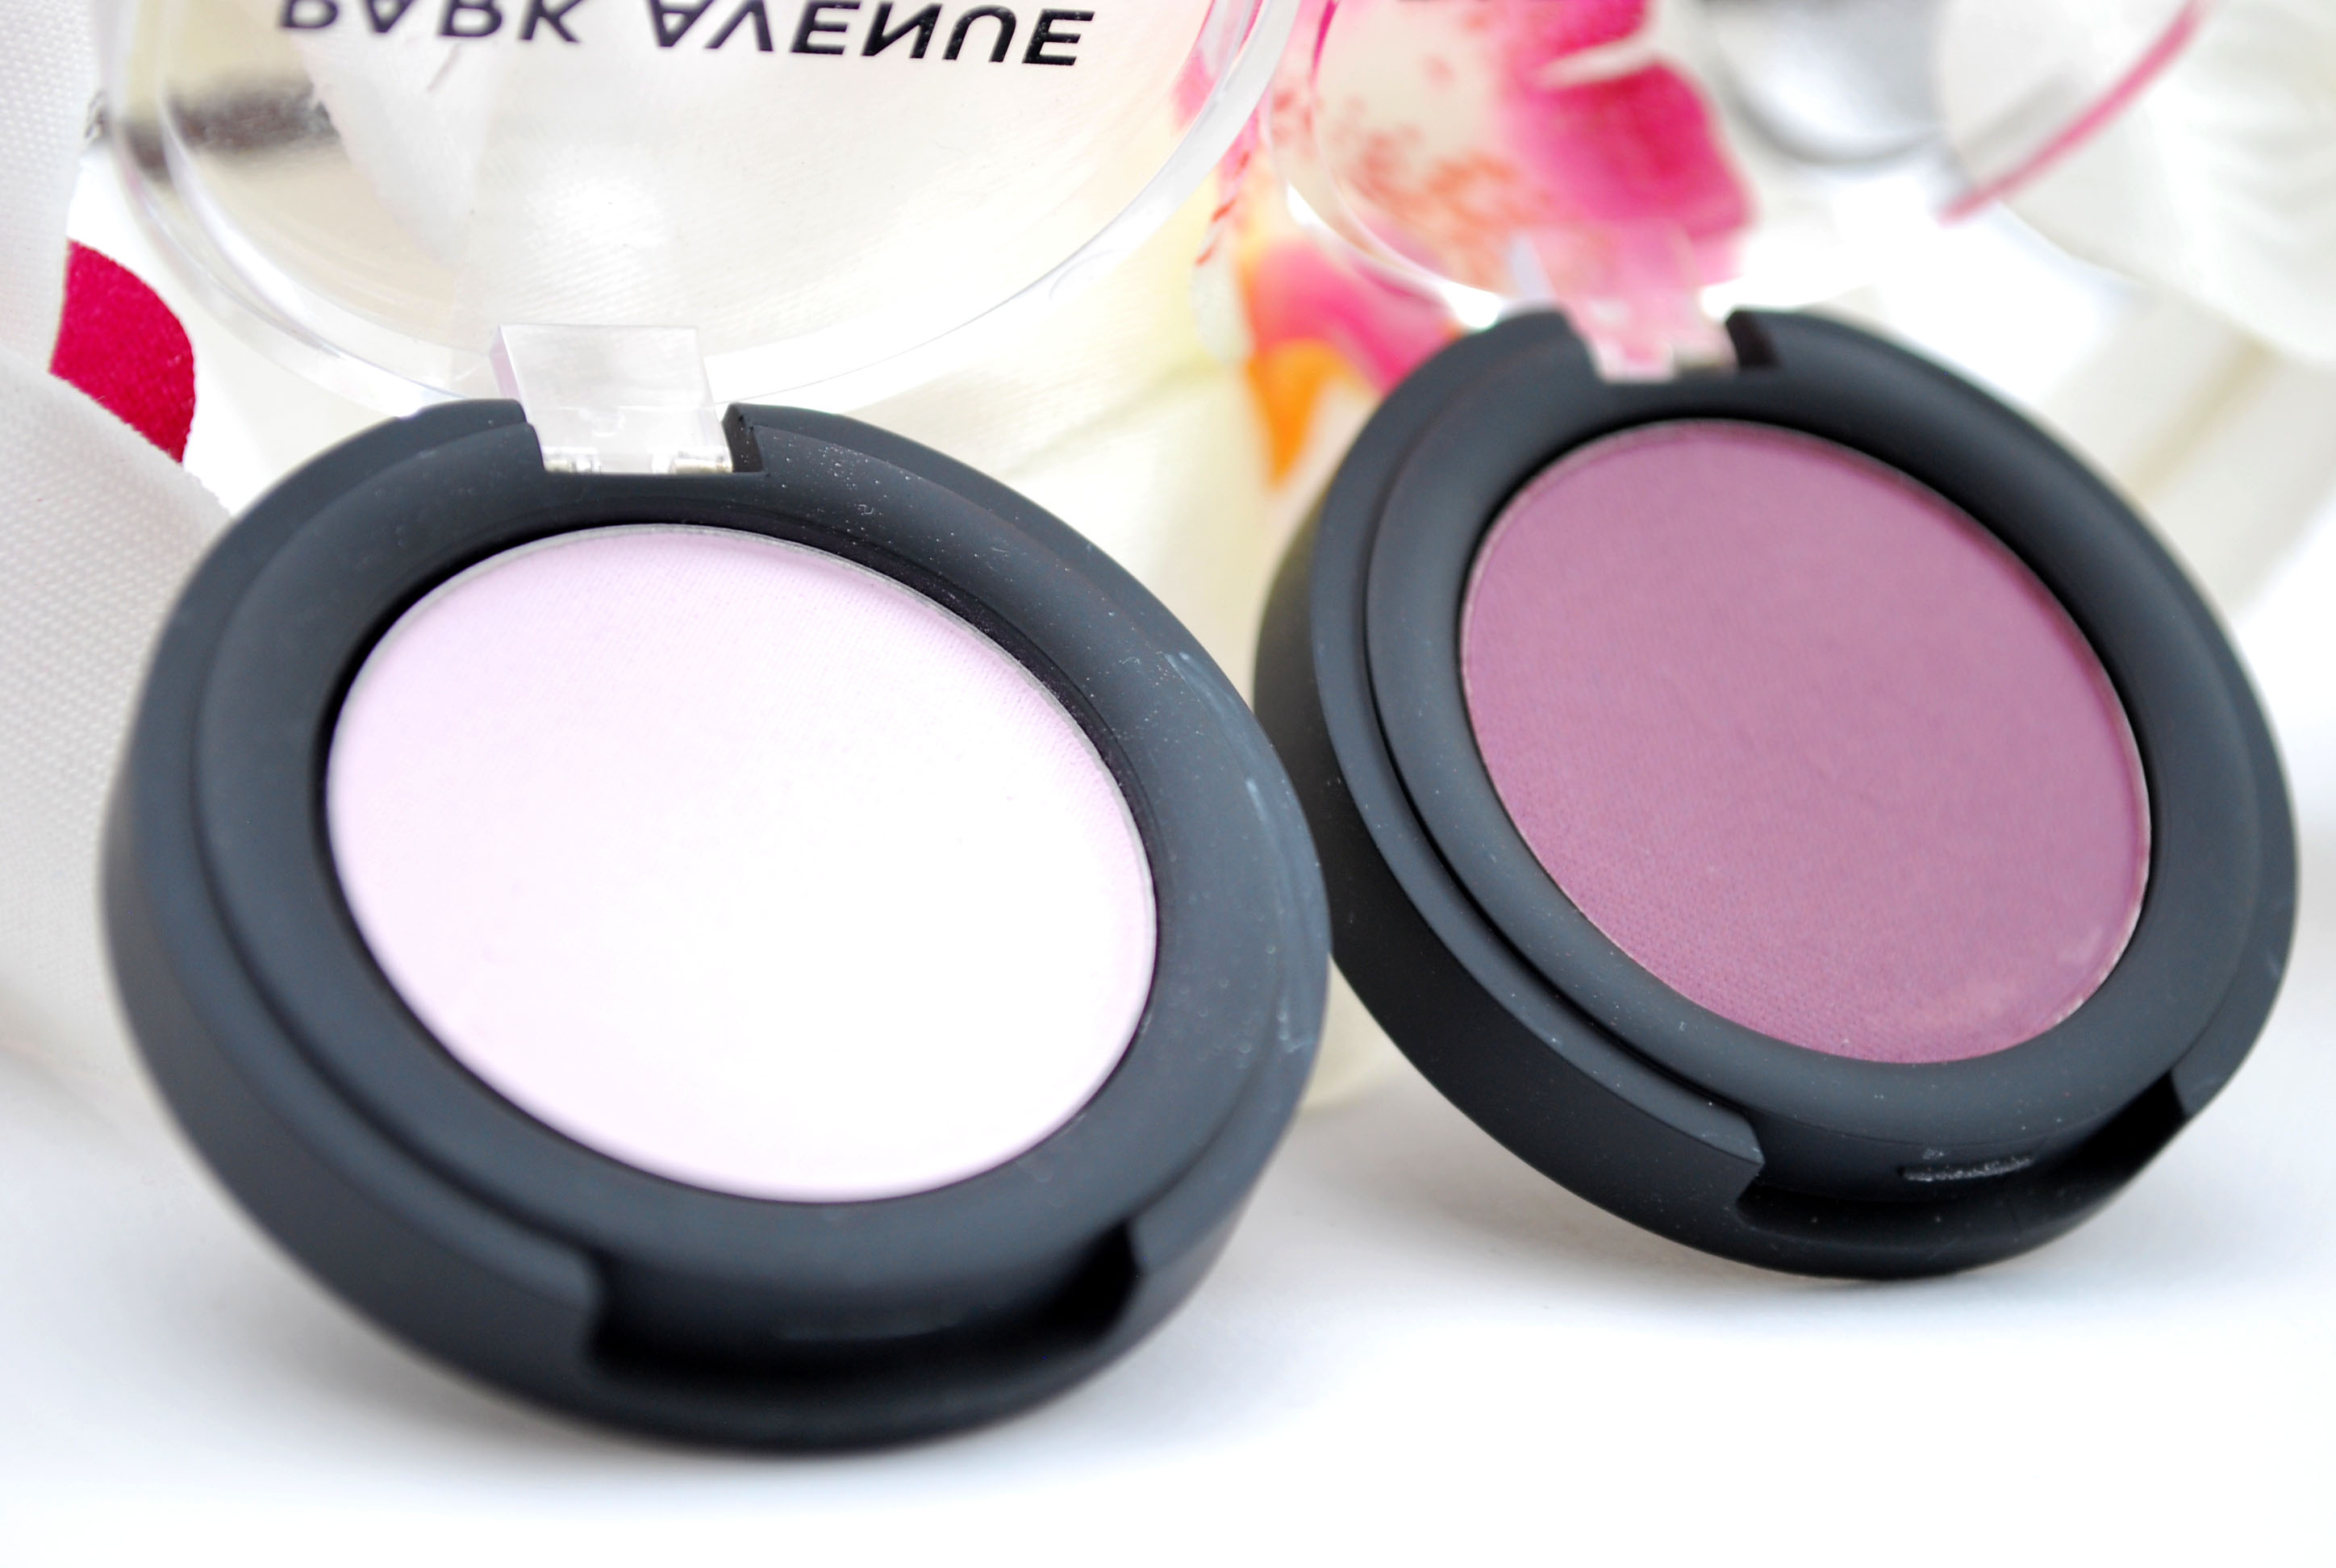 review park avenue make up eyeshadow